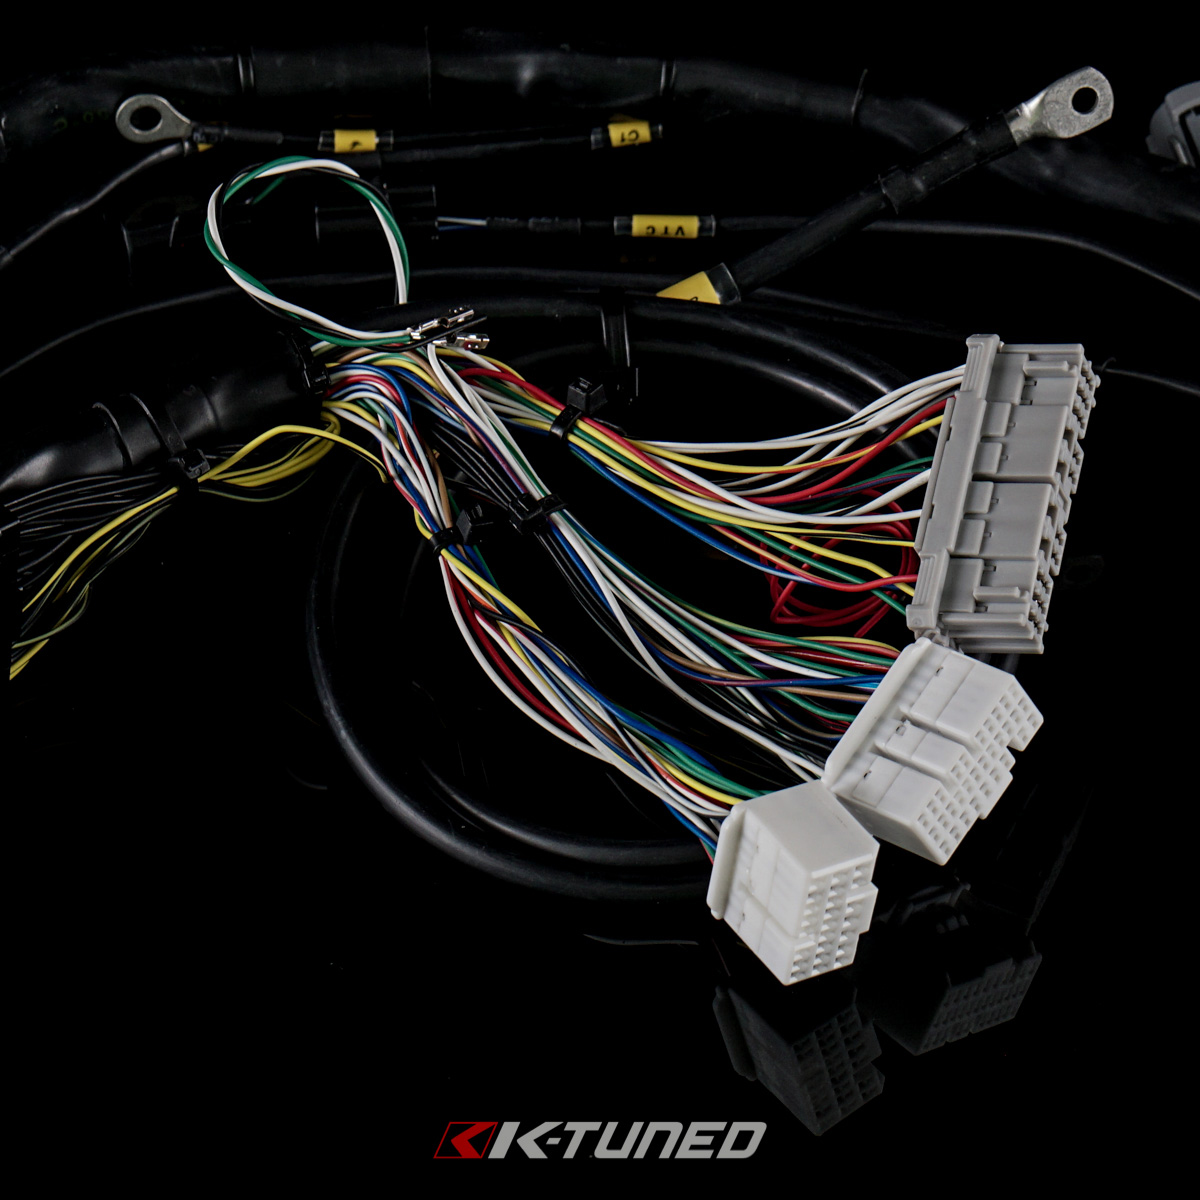 KTH 204 ENG_020 k series tucked engine harness rsx tucked wire harness at fashall.co